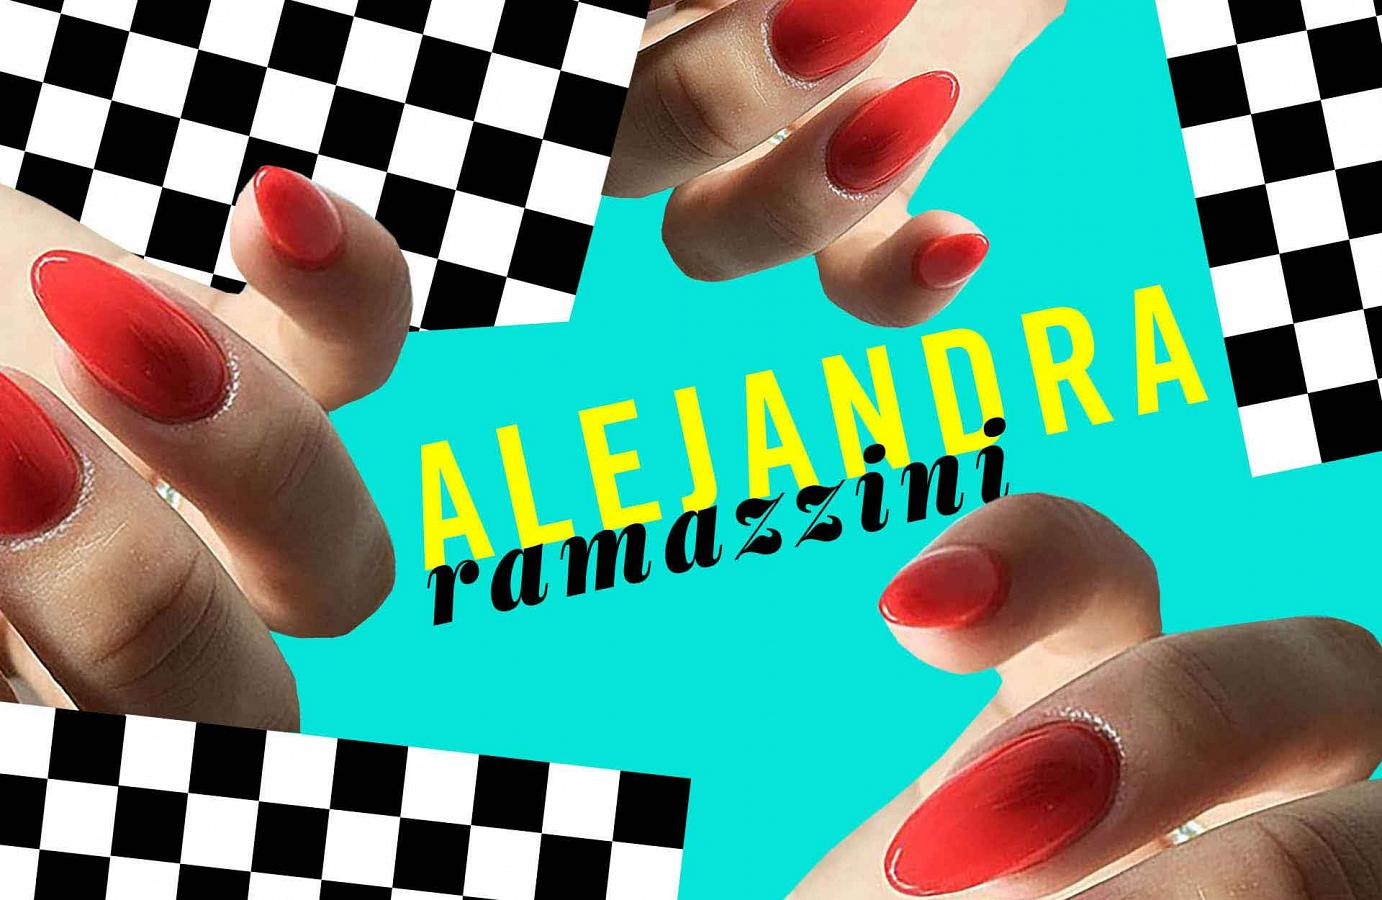 Nail'n it: Alejandra Ramazzini on Life as a Nail Studio Instructor and her thriving Bodega Nails Studio